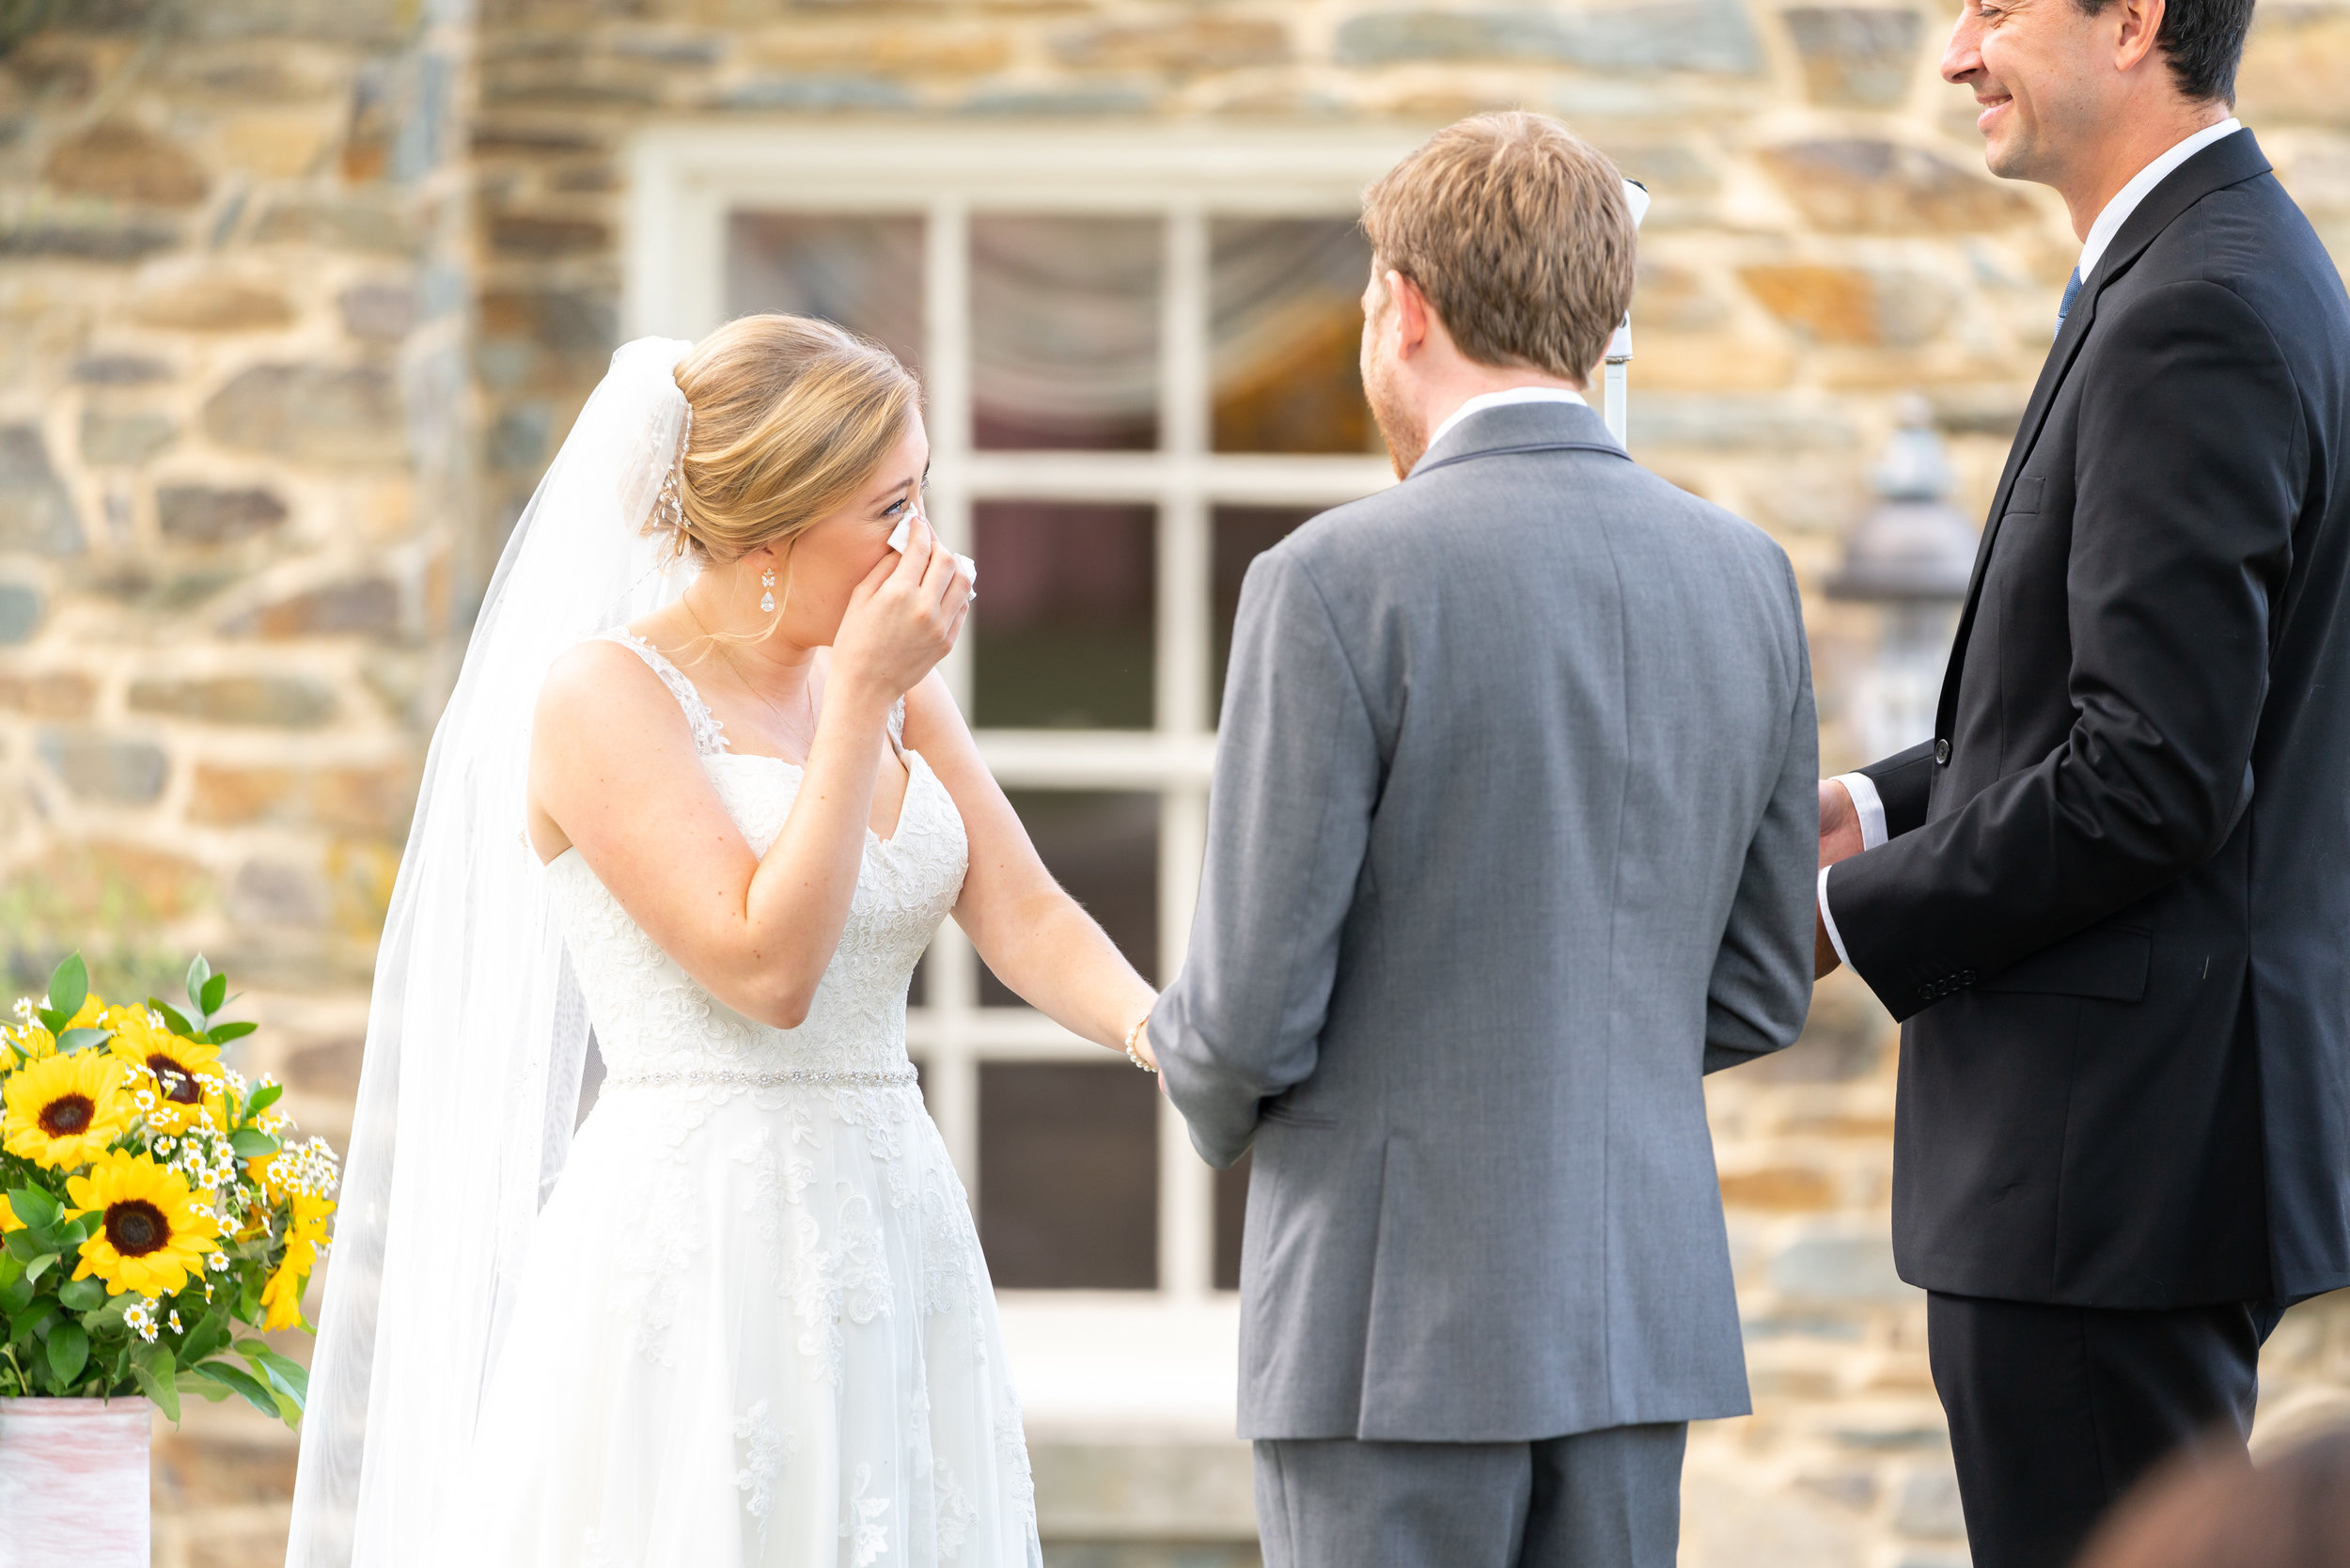 Summer wedding outdoor ceremony at Stone Manor Country Club